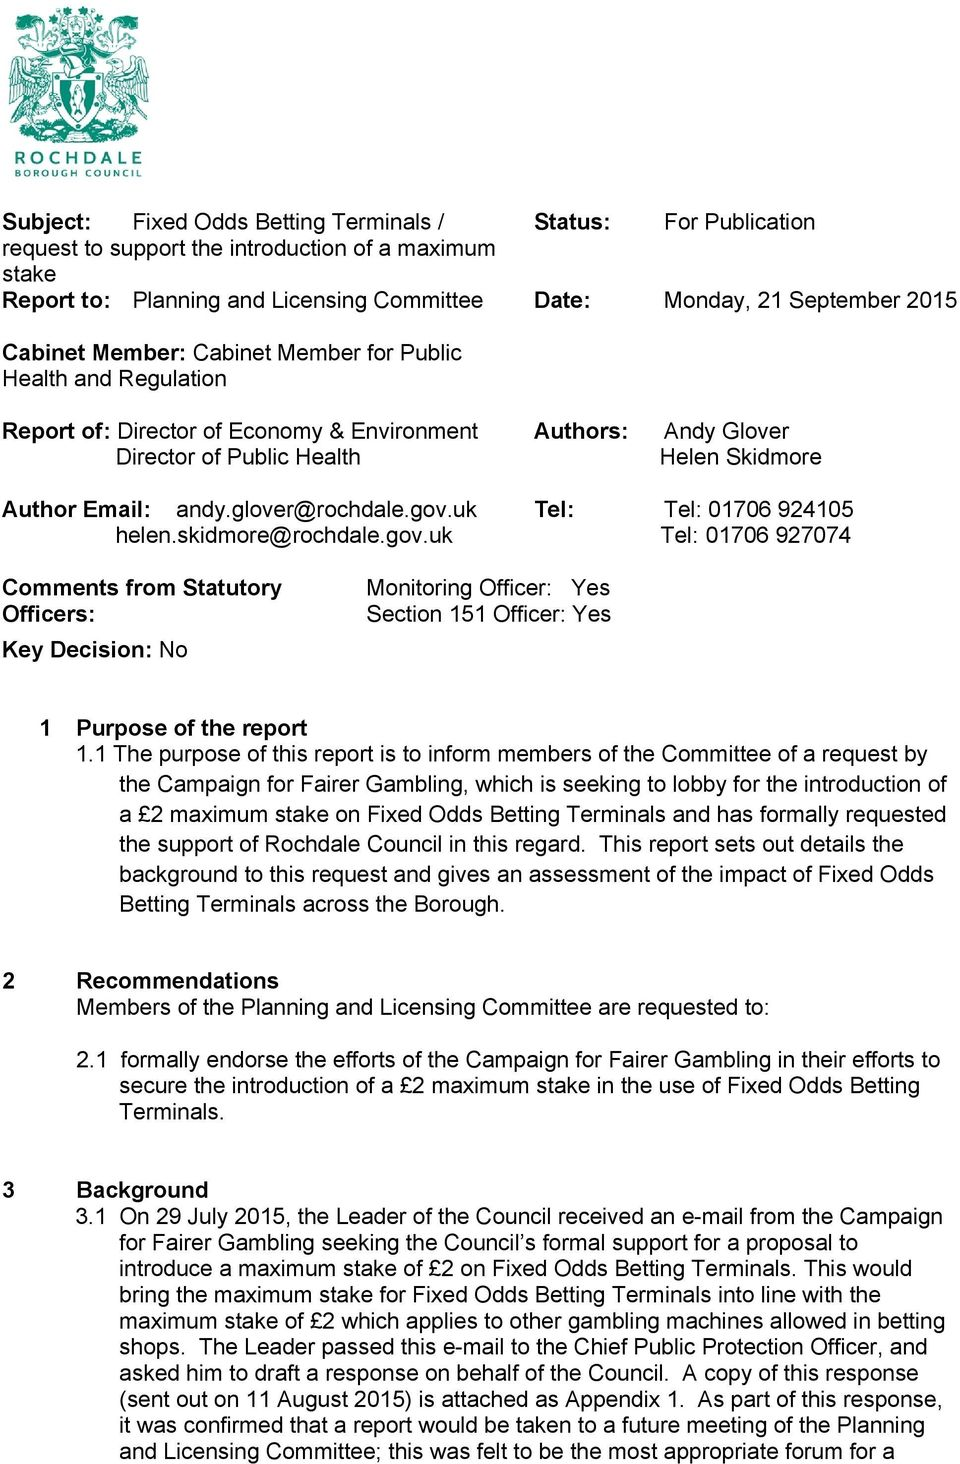 glover@rochdale.gov.uk Tel: Tel: 01706 924105 helen.skidmore@rochdale.gov.uk Tel: 01706 927074 Comments from Statutory Officers: Key Decision: No Monitoring Officer: Yes Section 151 Officer: Yes 1 Purpose of the report 1.